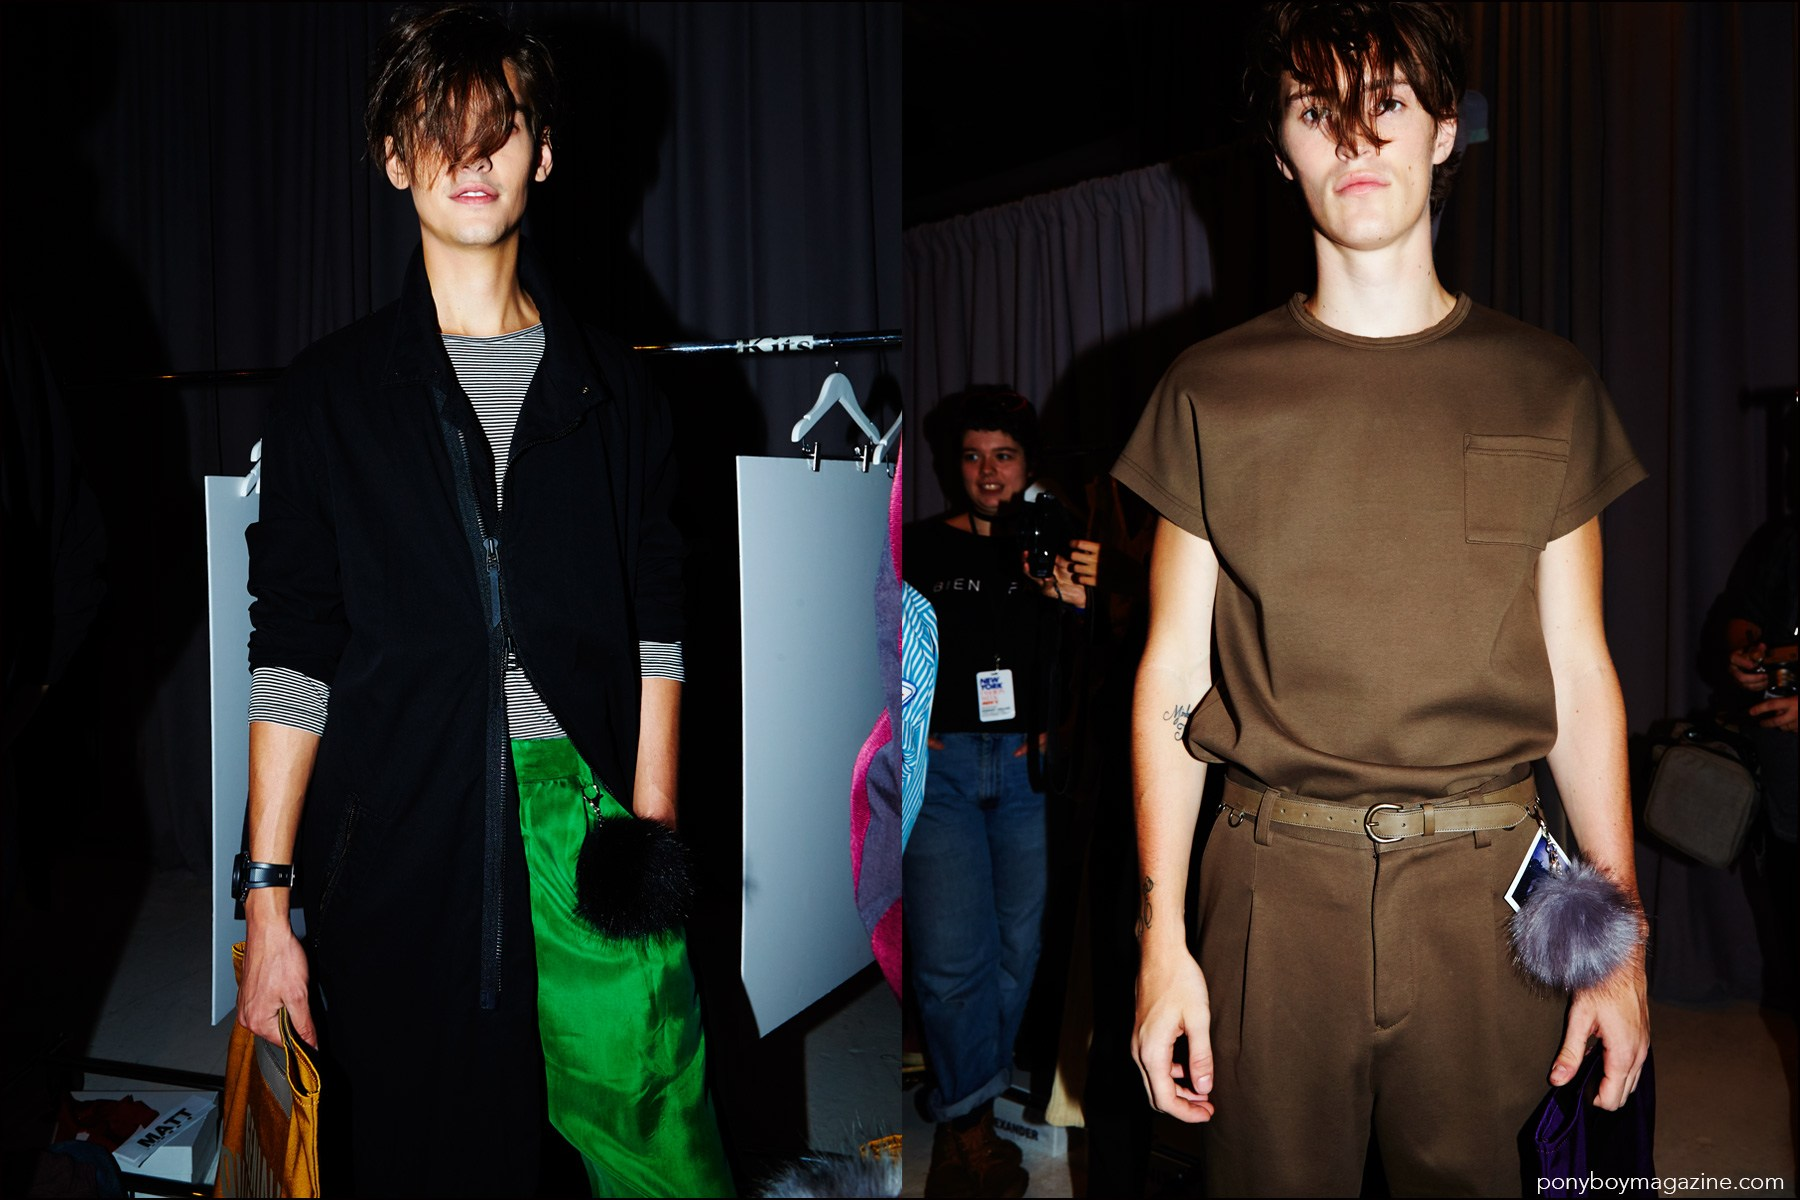 Models with long bangs, photographed backstage at Robert Geller Spring/Summer 2017 menswear show. Photography by Alexander Thompson for Ponyboy magazine NY.